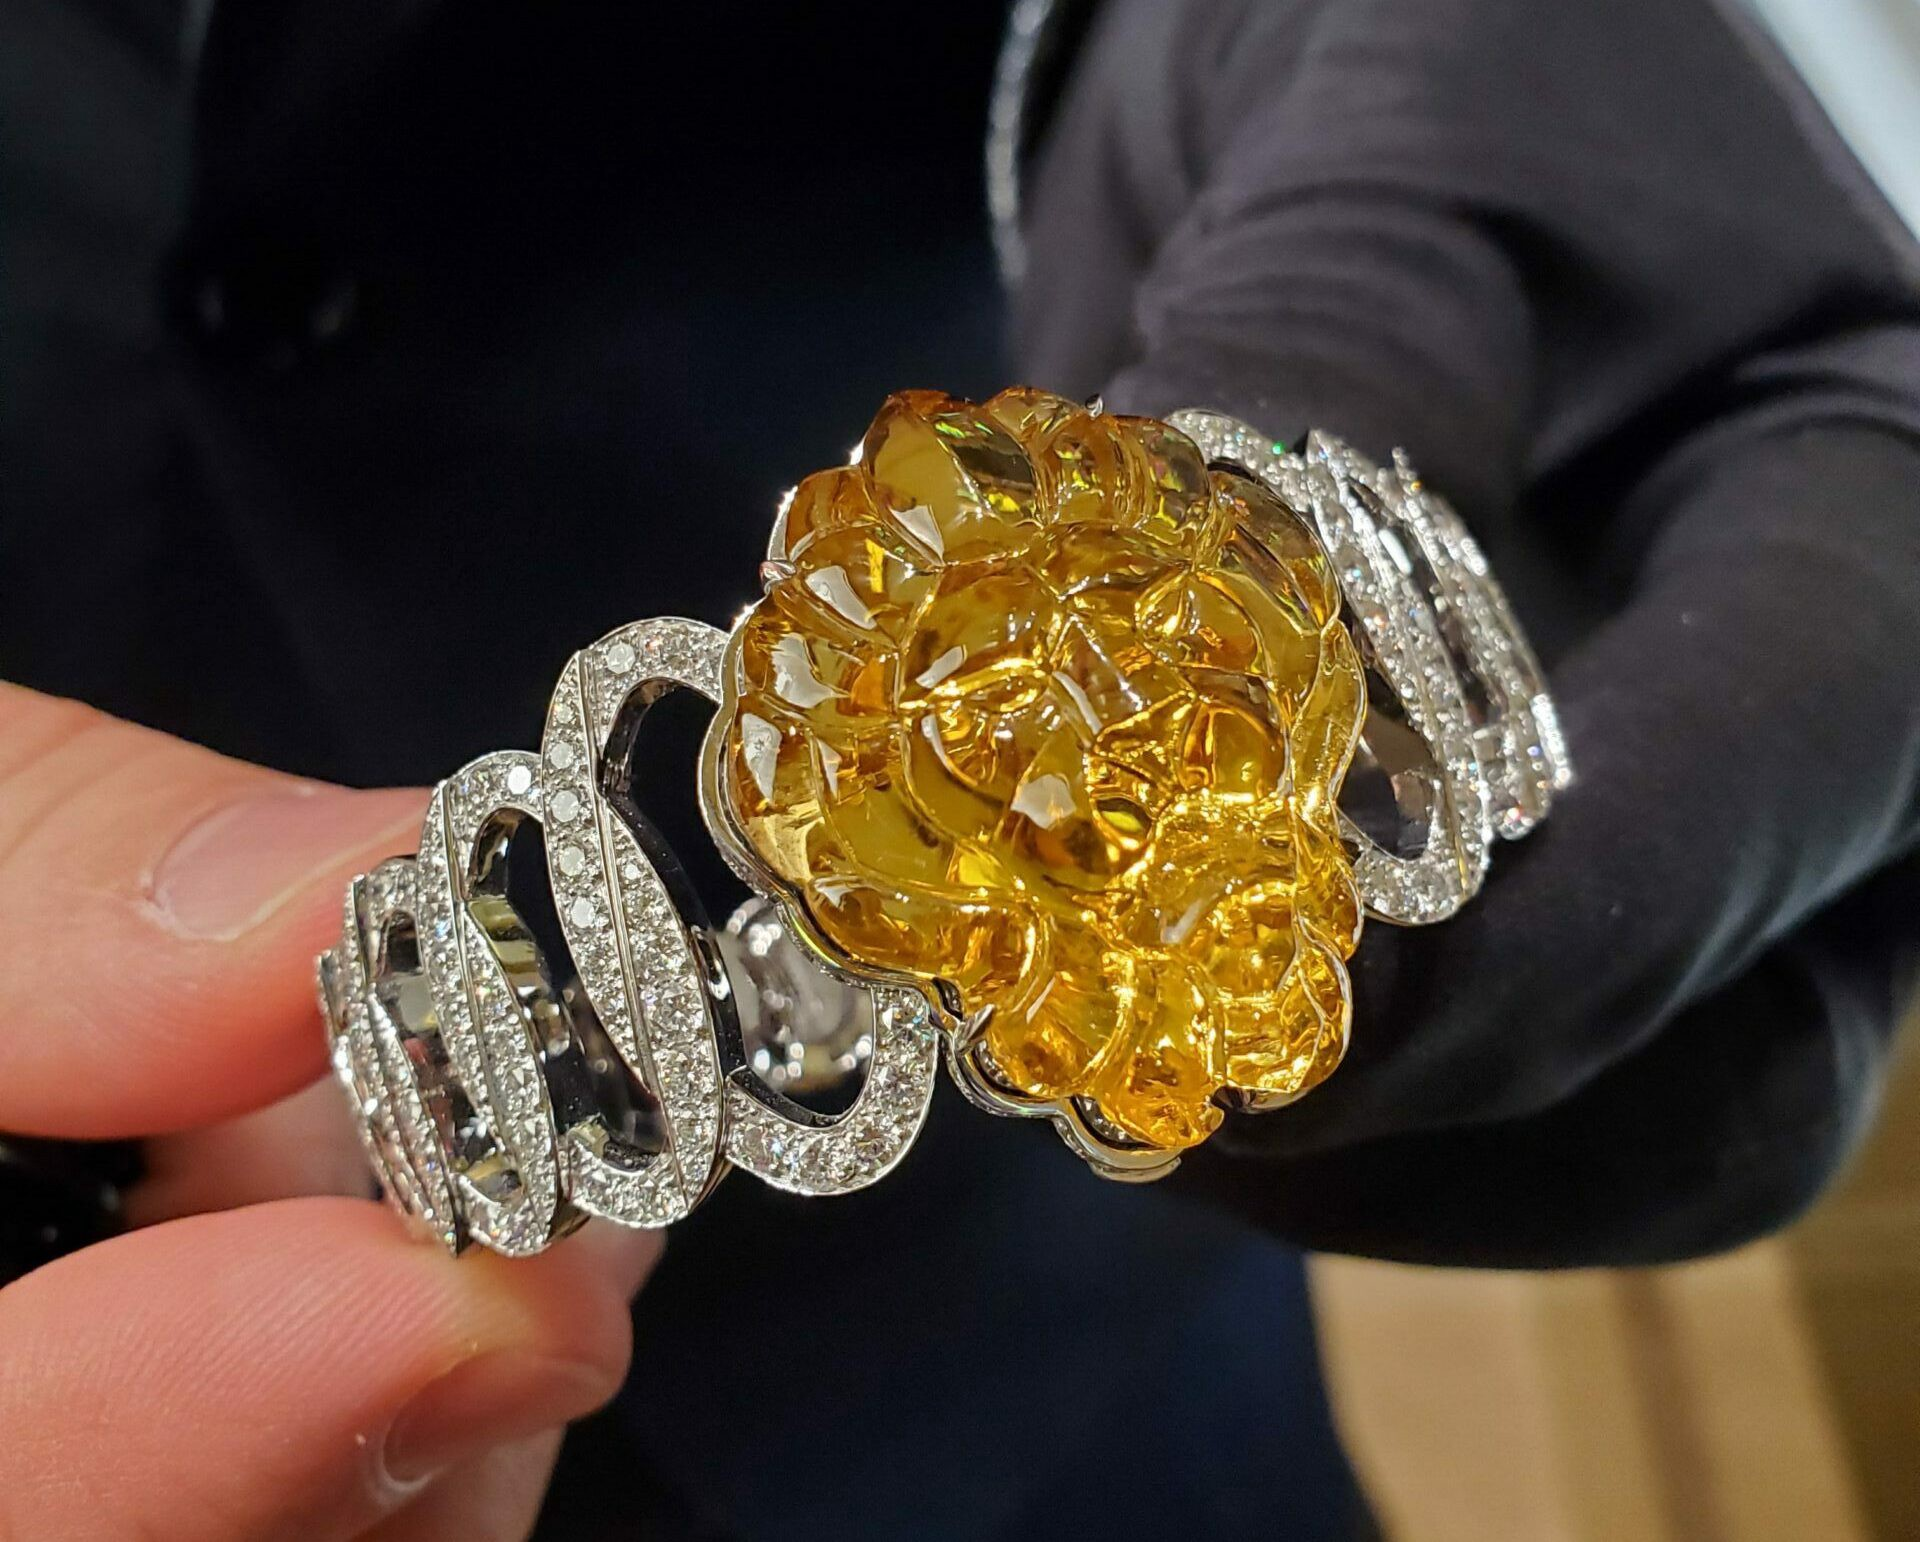 Folio Yvr 8 9 Chanel L Esprit Du Lion High Jewellery By Mona